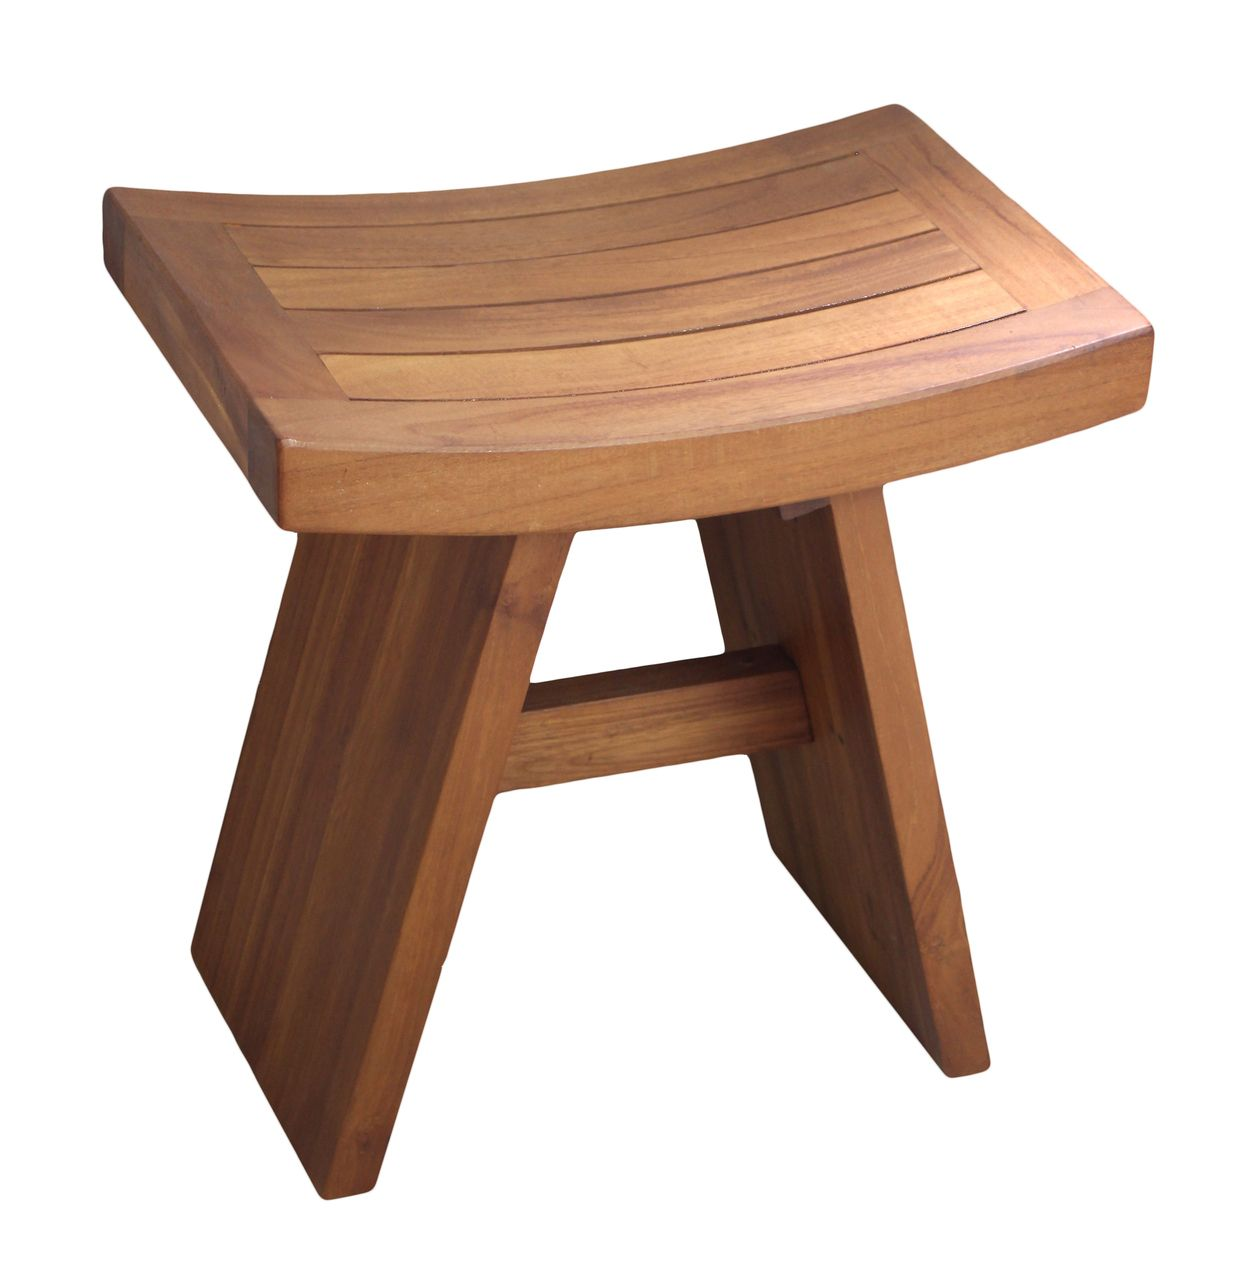 teak bathroom stools. Teak Shower Bench | Bath Stool Seat - Aqua Bathroom Stools F